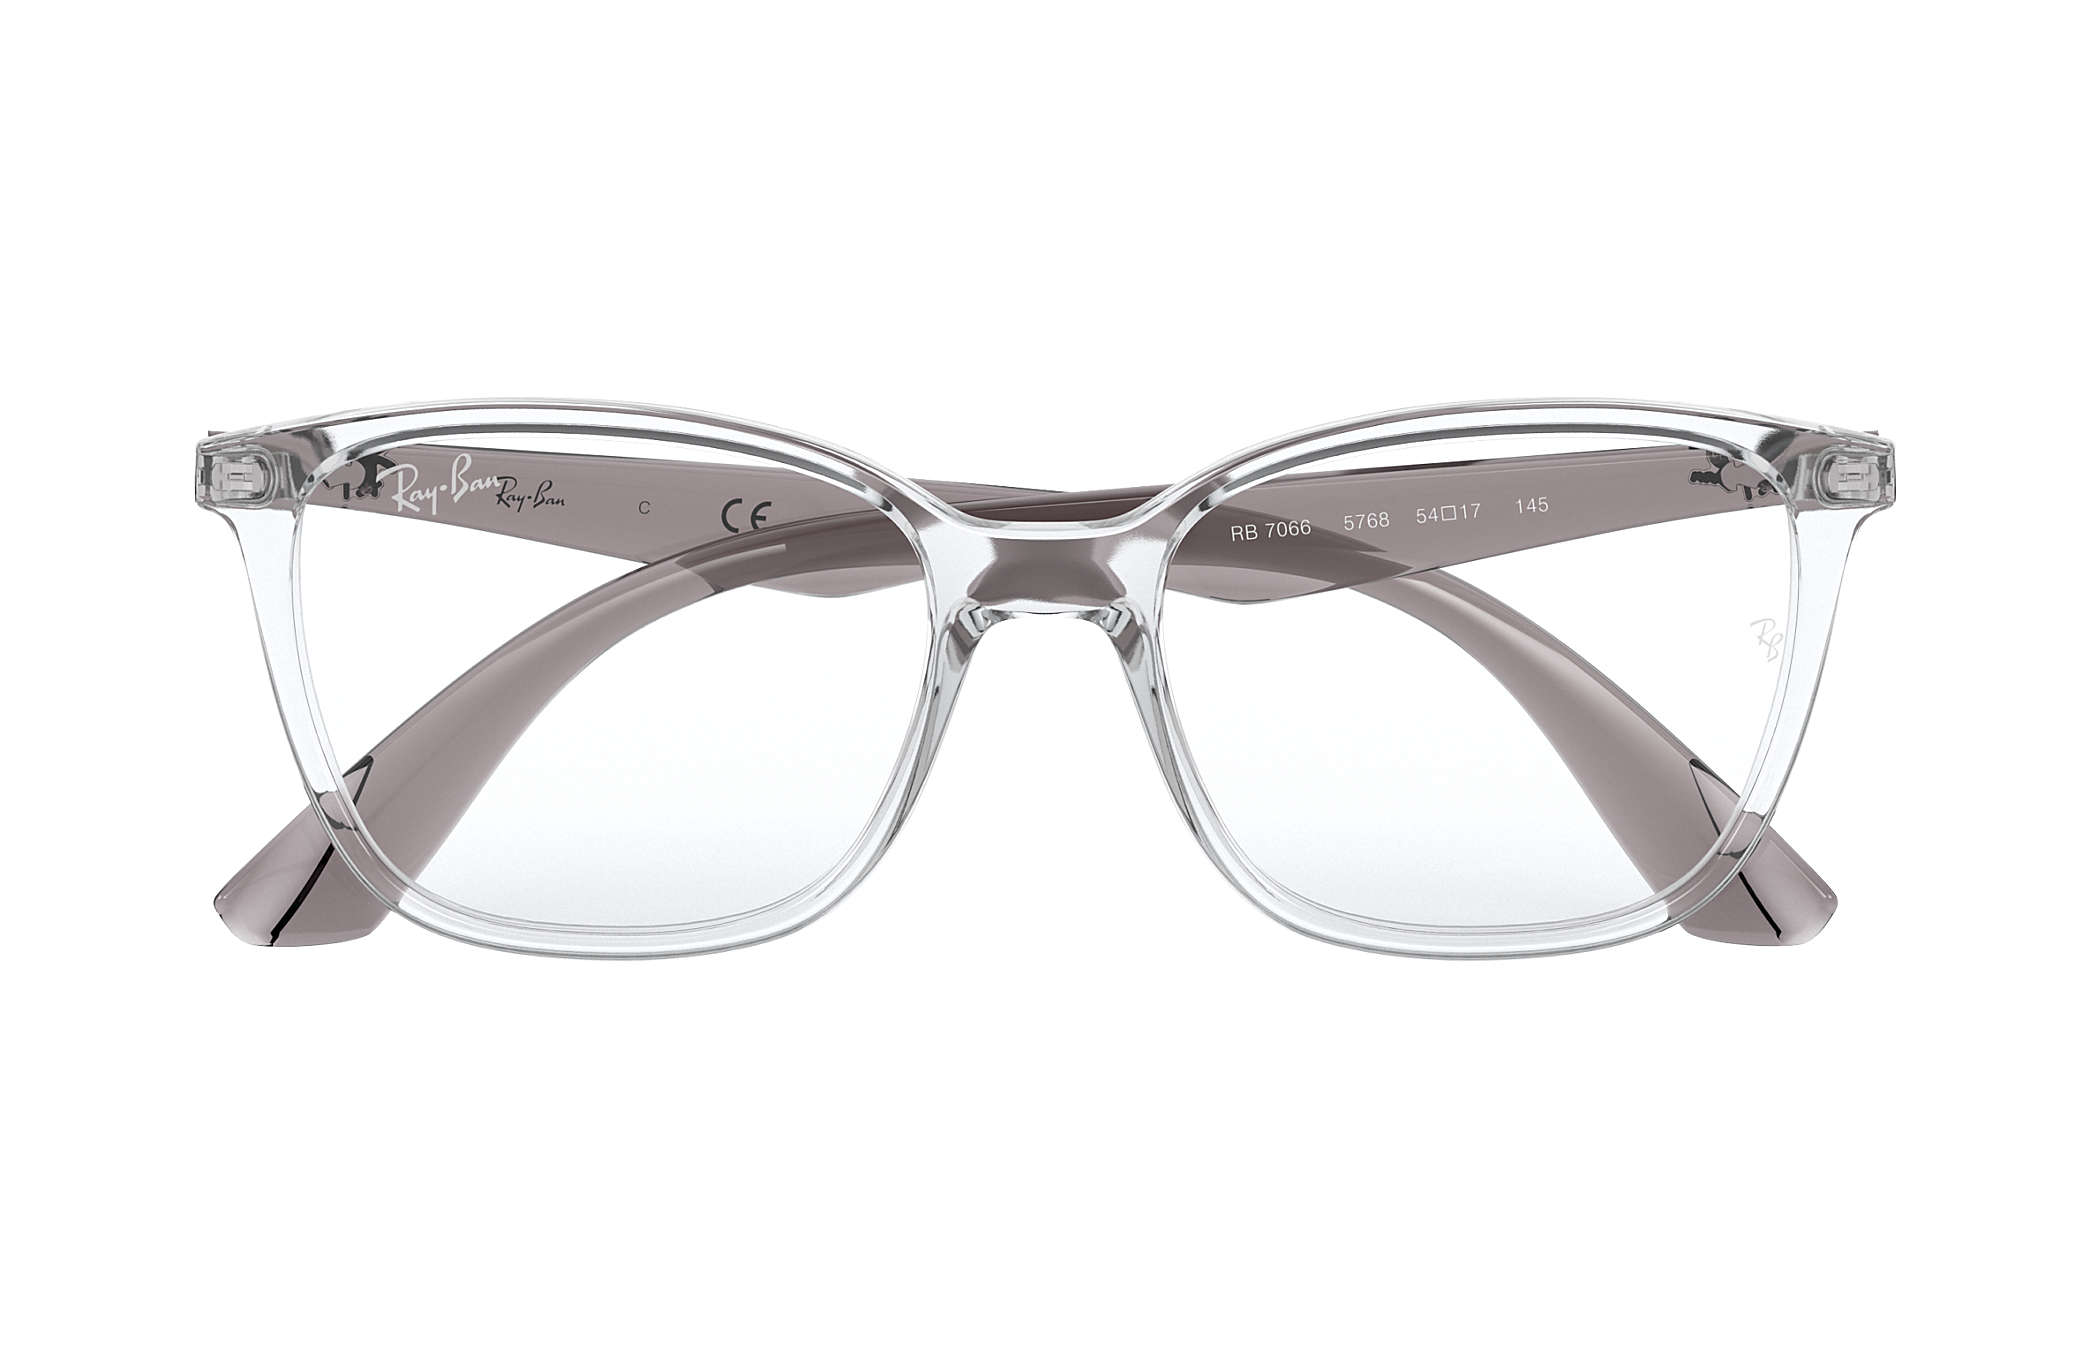 Ray Ban eyeglasses RB7066 Transparent Injected